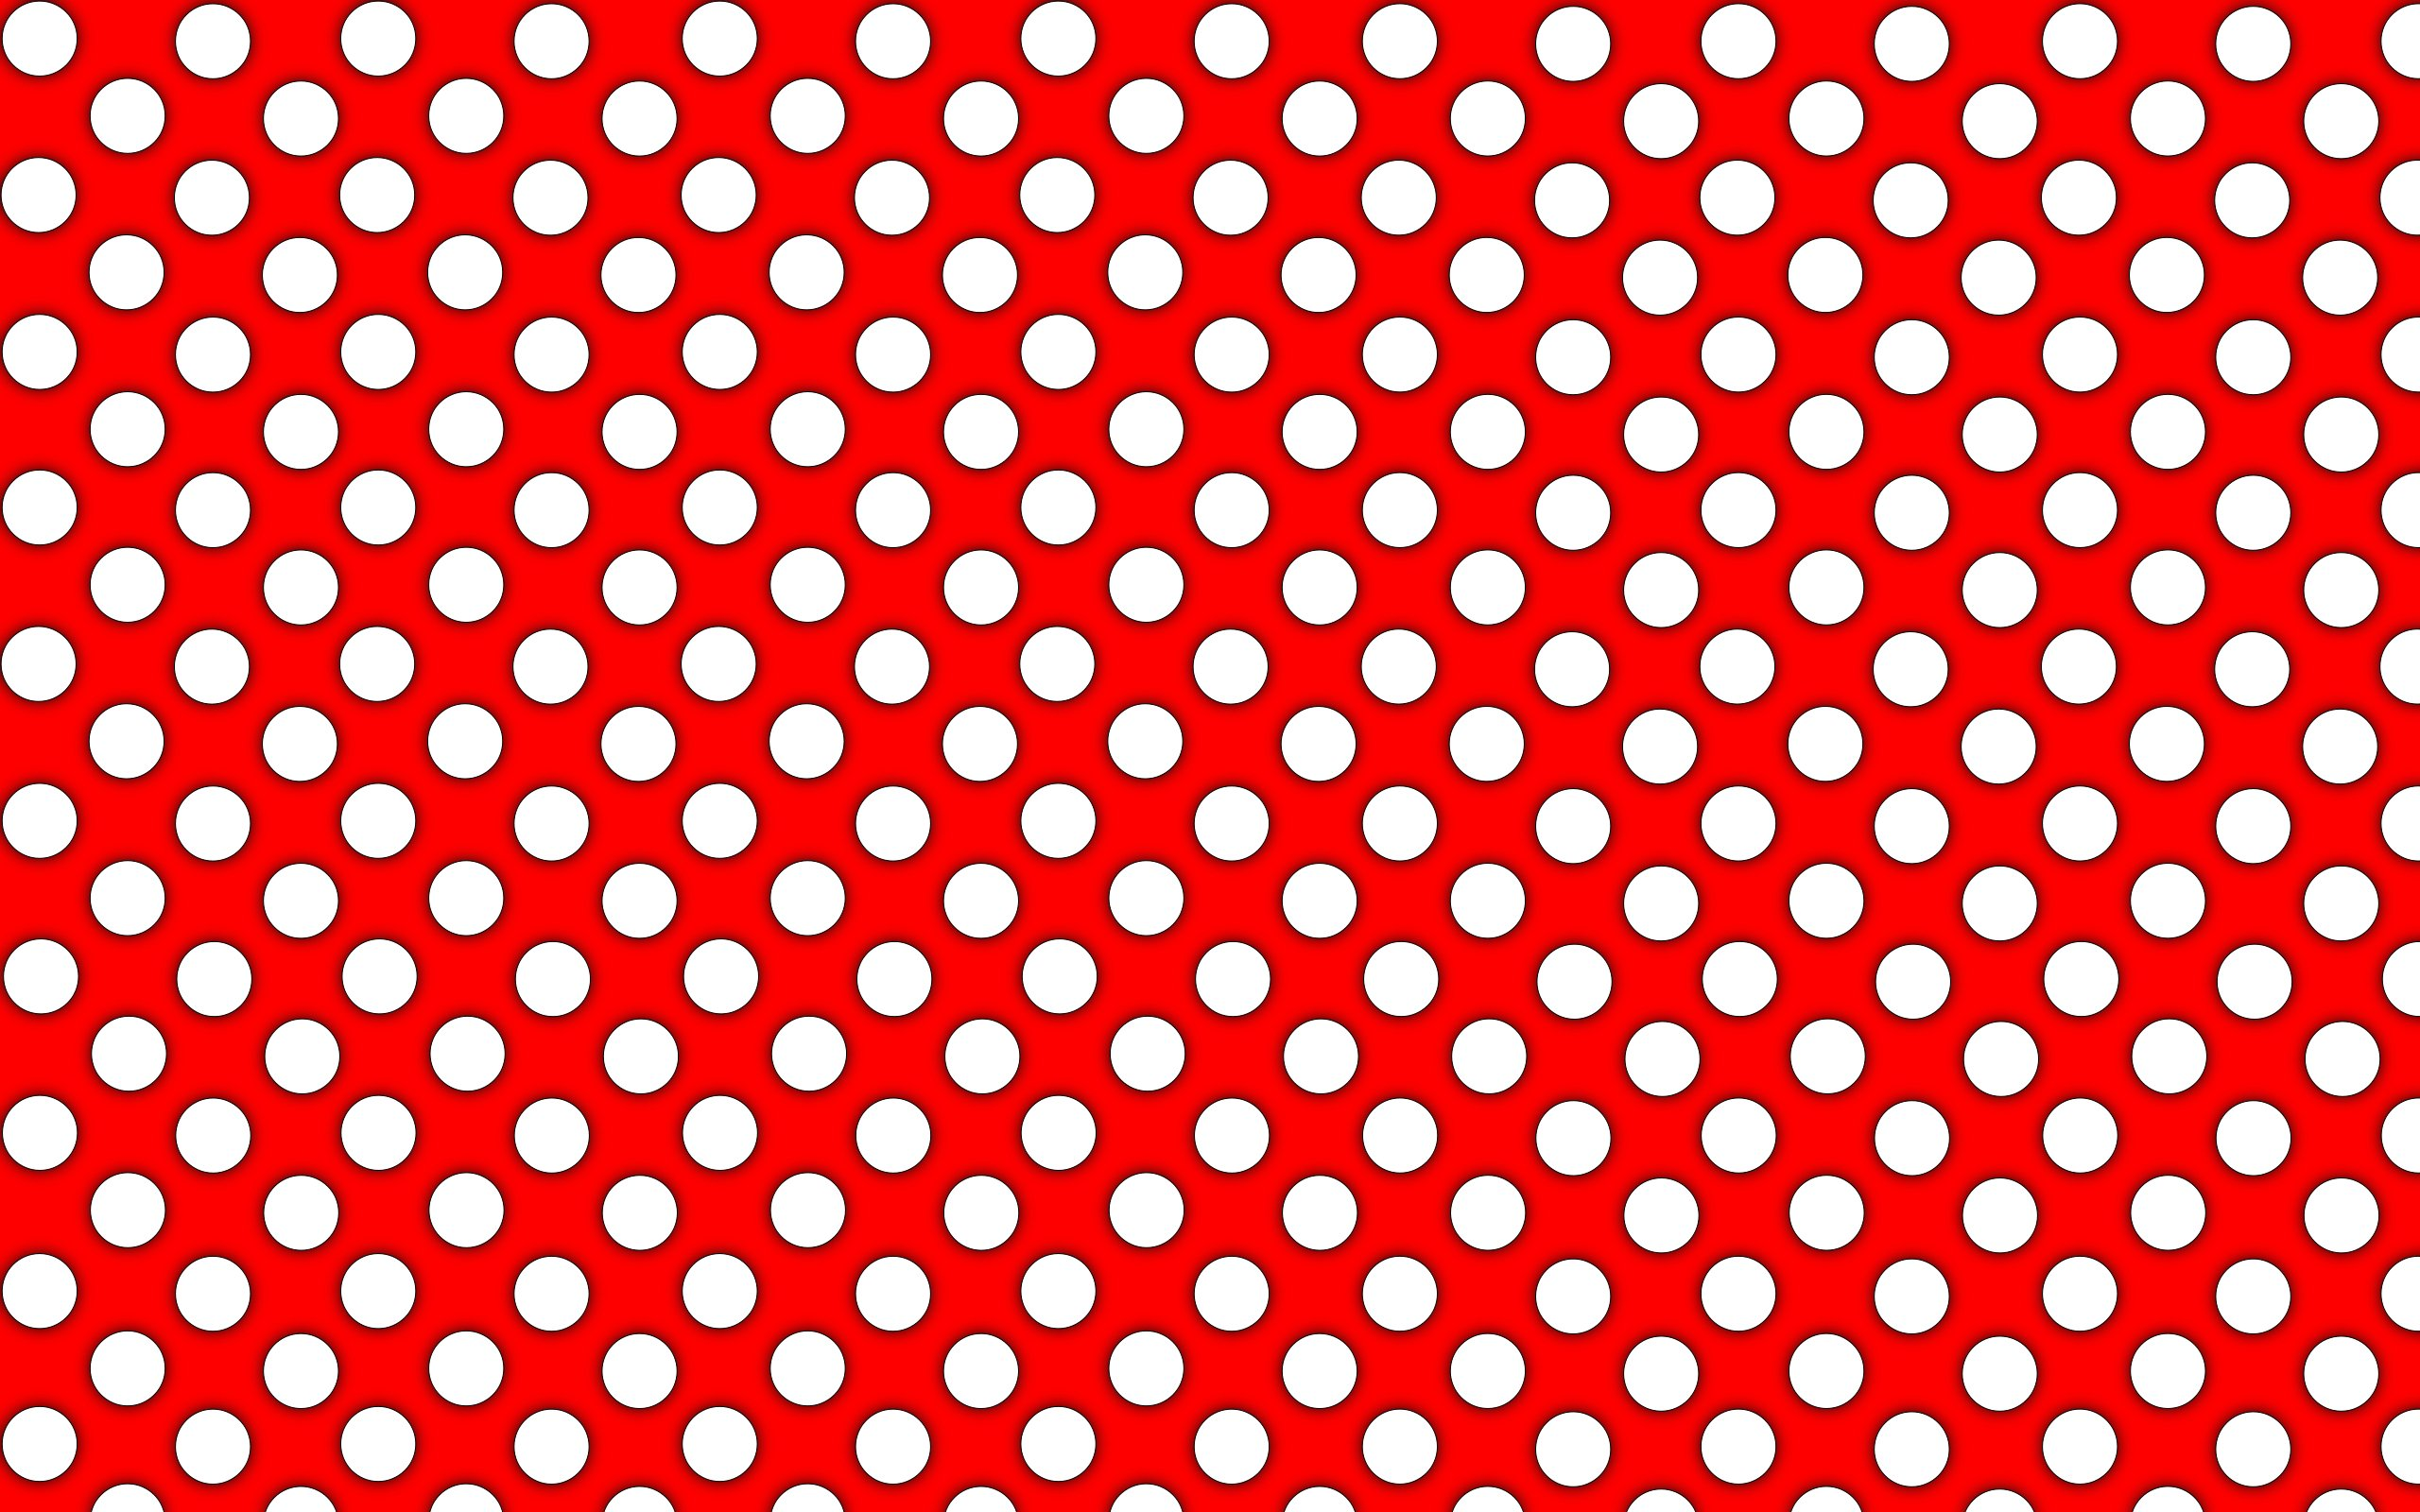 Hd Wallpaper Polka Dot Card Stock: Wallpapers for Gt Red Polka Dots Background 2560x1600px